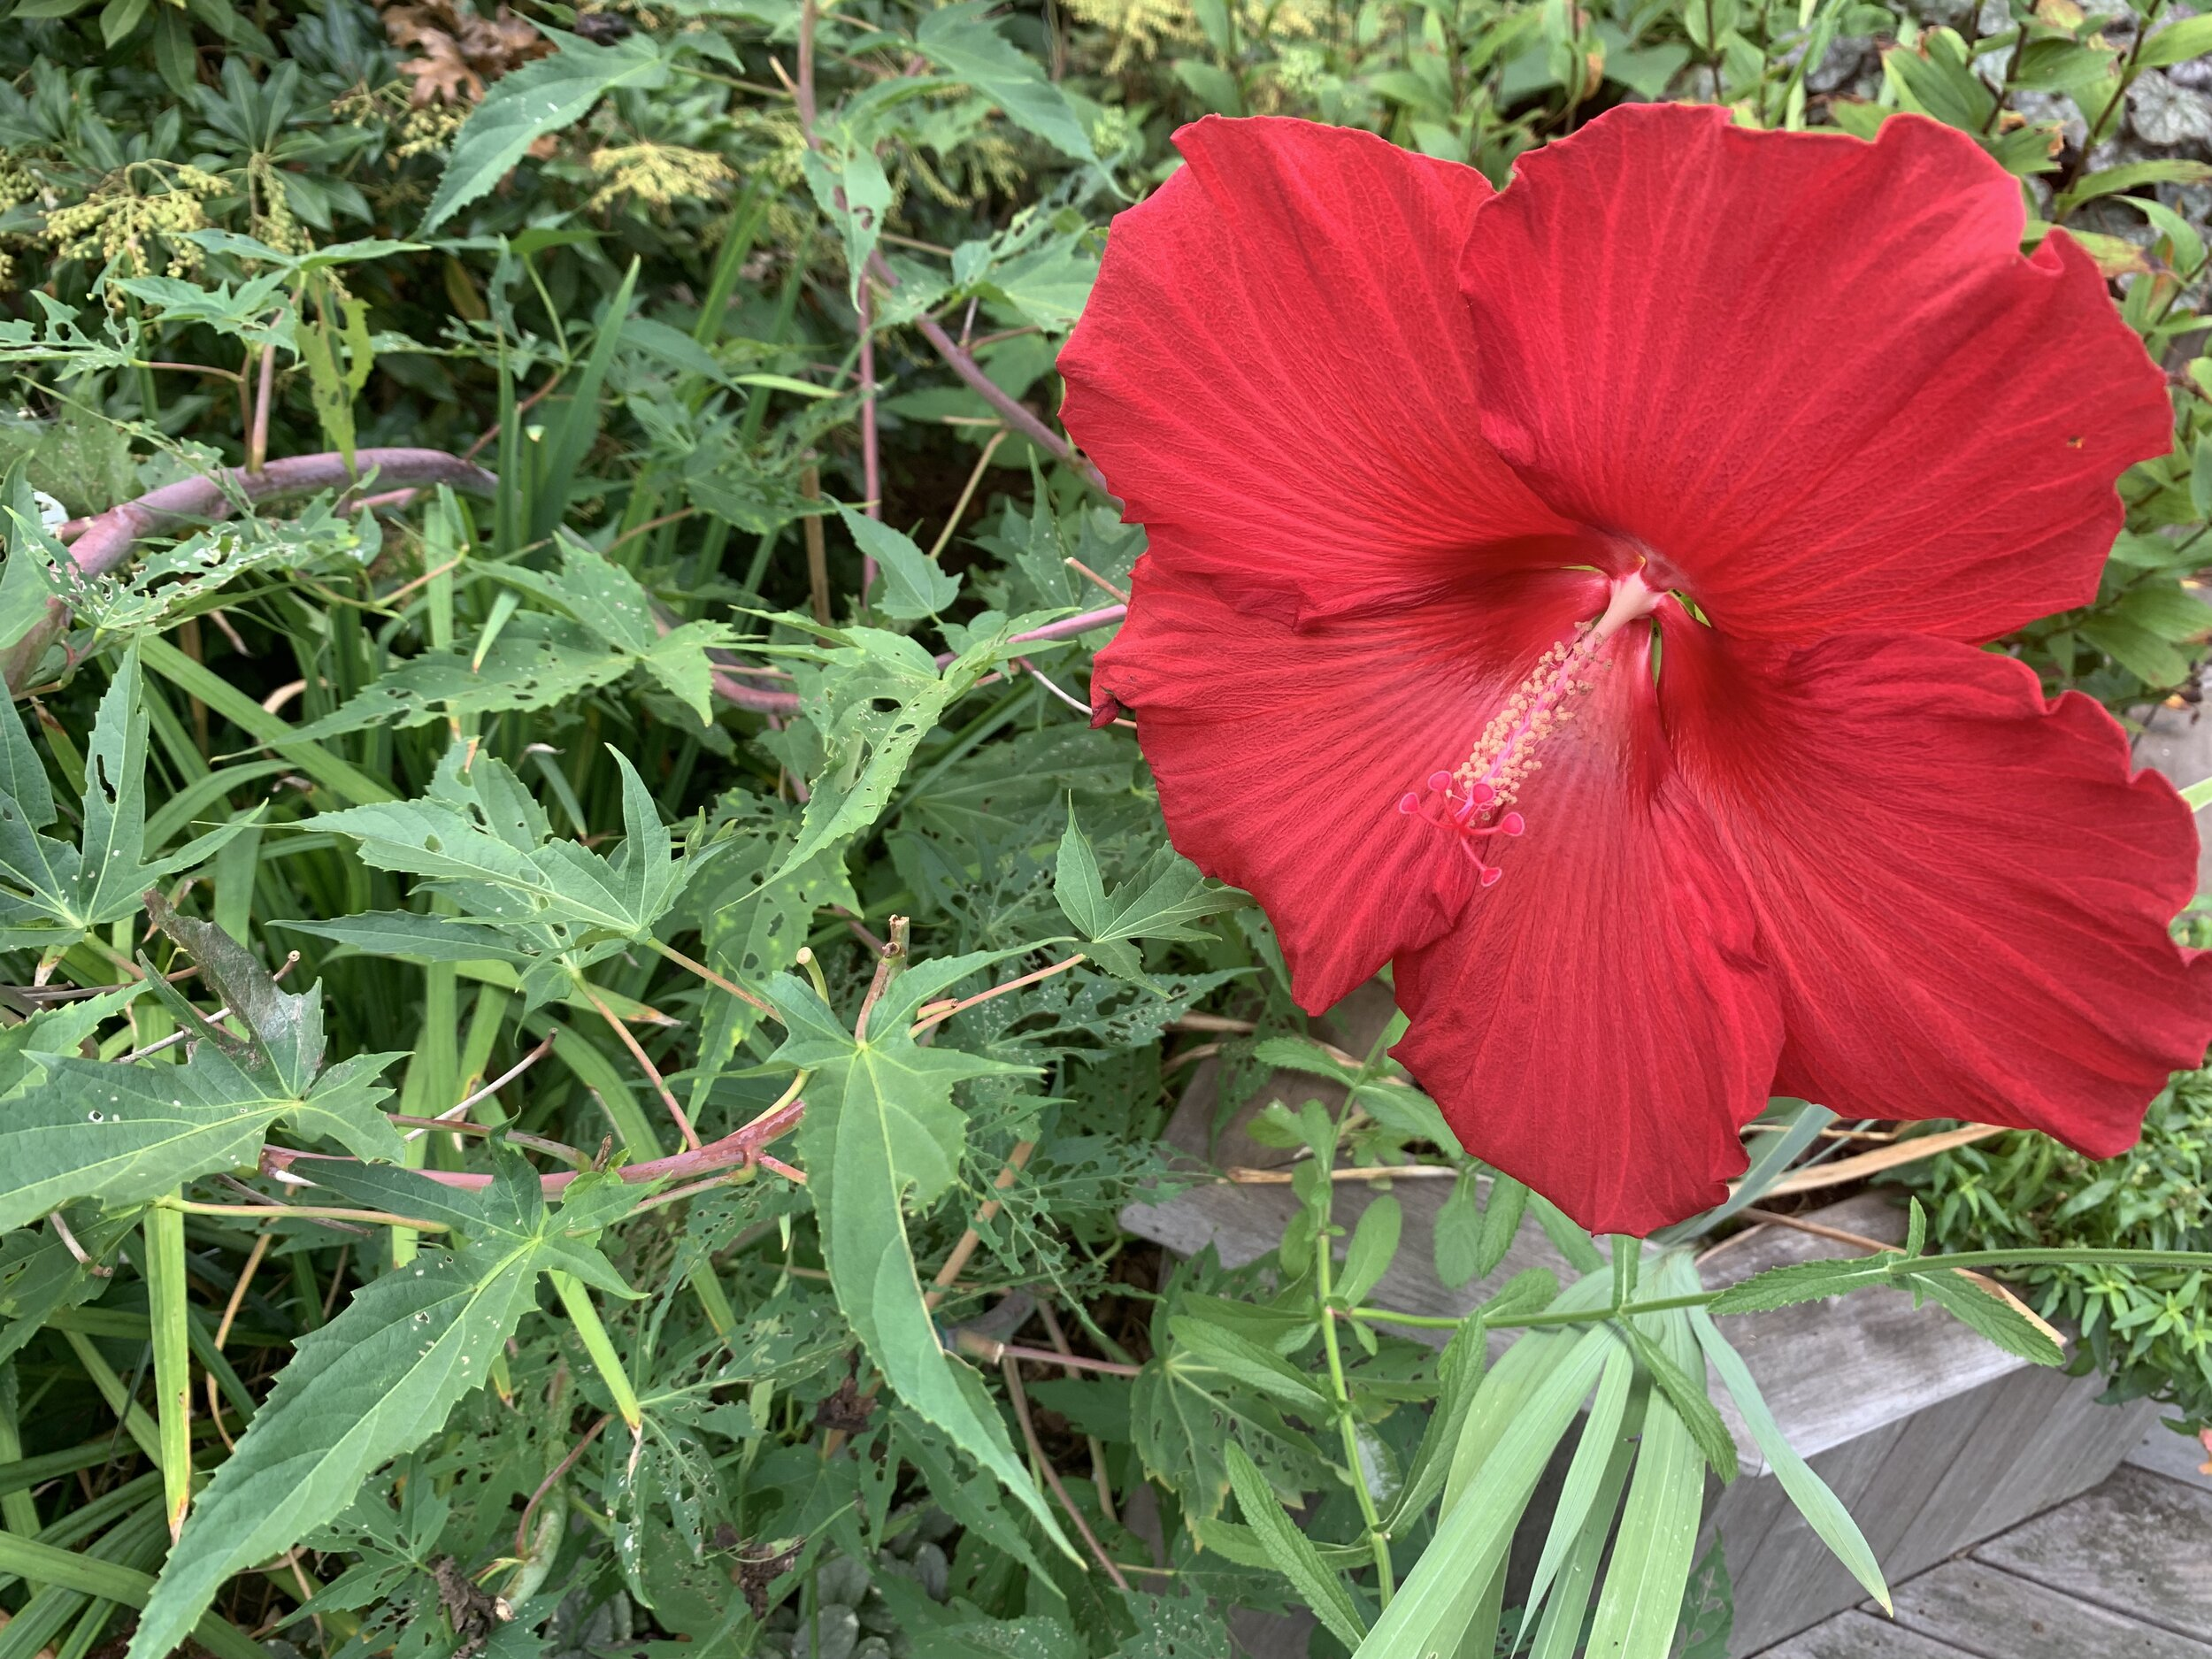 The hardy hibiscus attracts hummingbirds, but I have to share the leaves with some leaf-muncher.